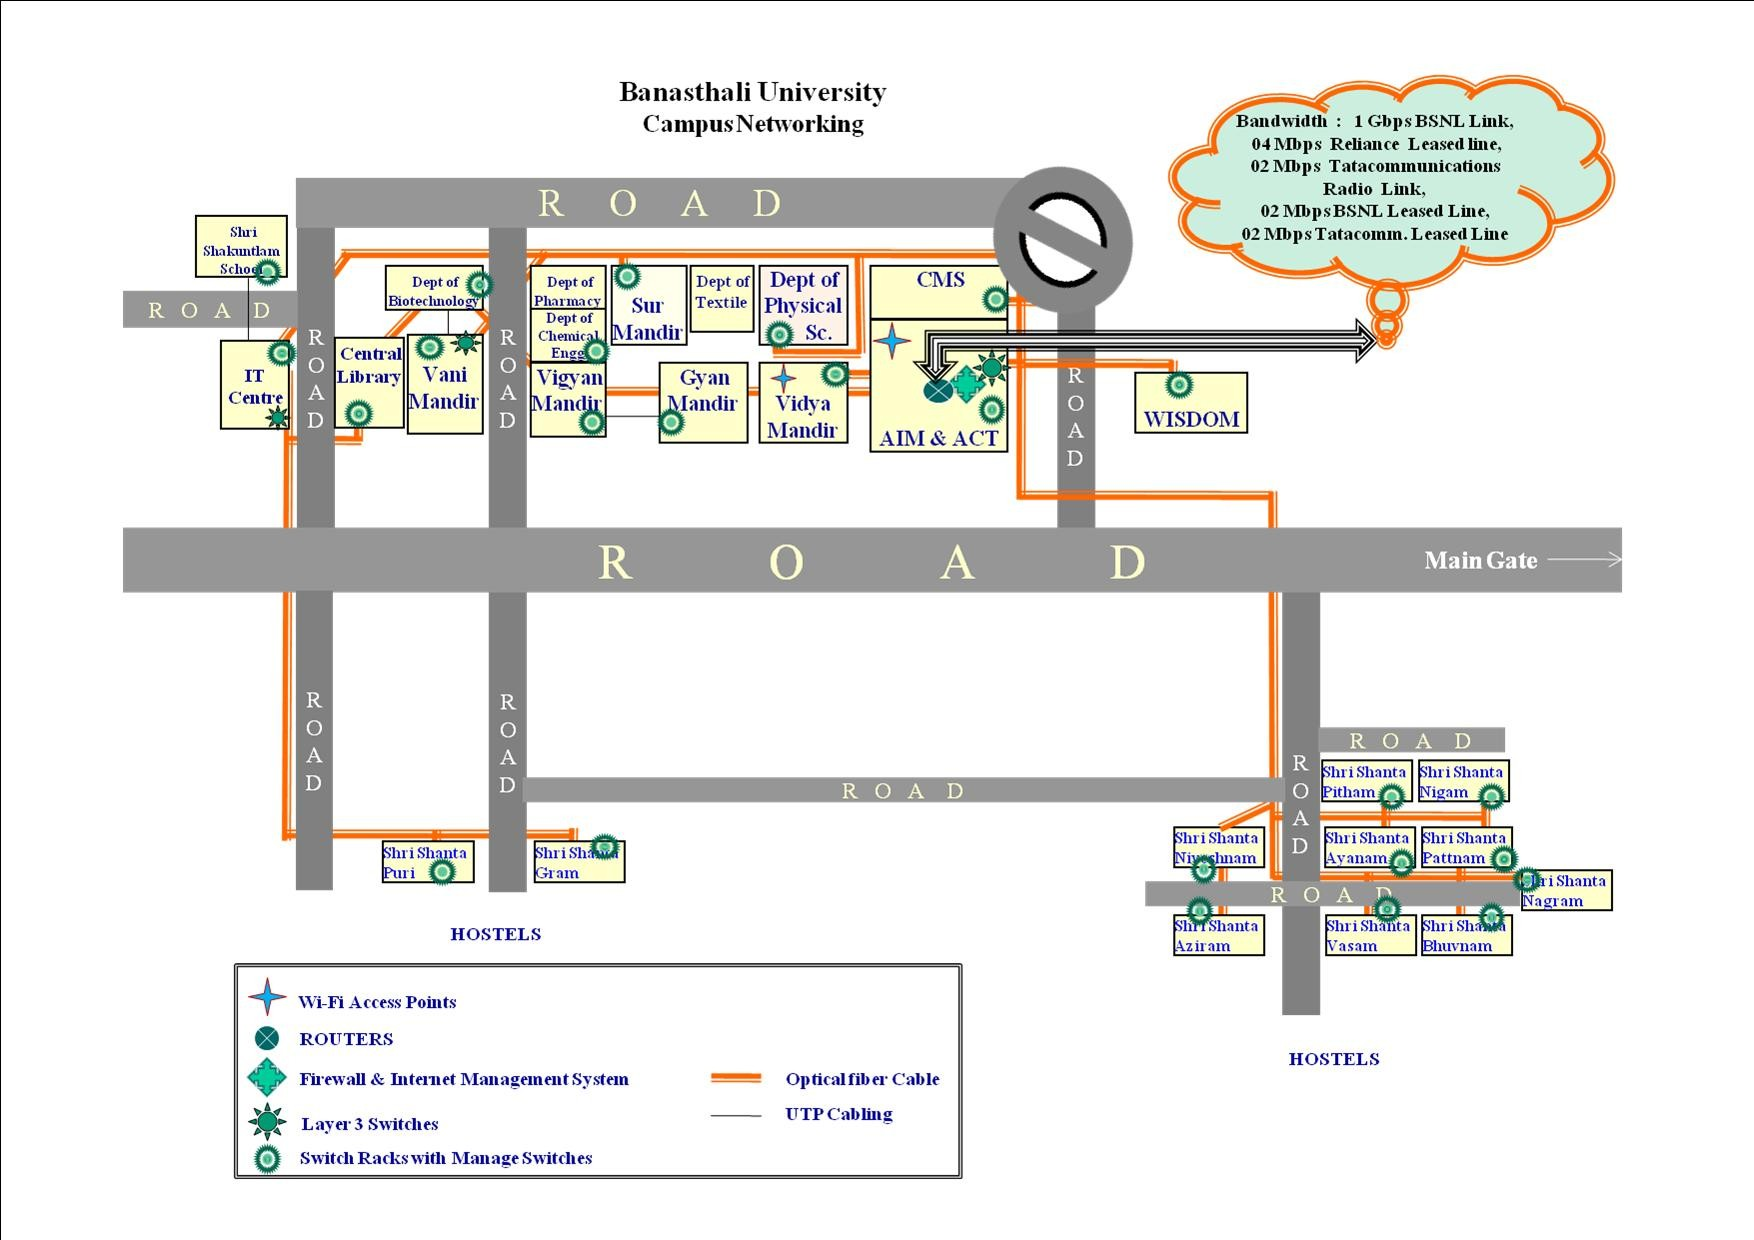 Networking Welcome To Banasthali Vidyapith Home Computer Network Diagram The Entire University Campus Is Networked Through Optical Fibre And Powerful Layer 3 2 Managed Unmanaged Switches Cisco 1700